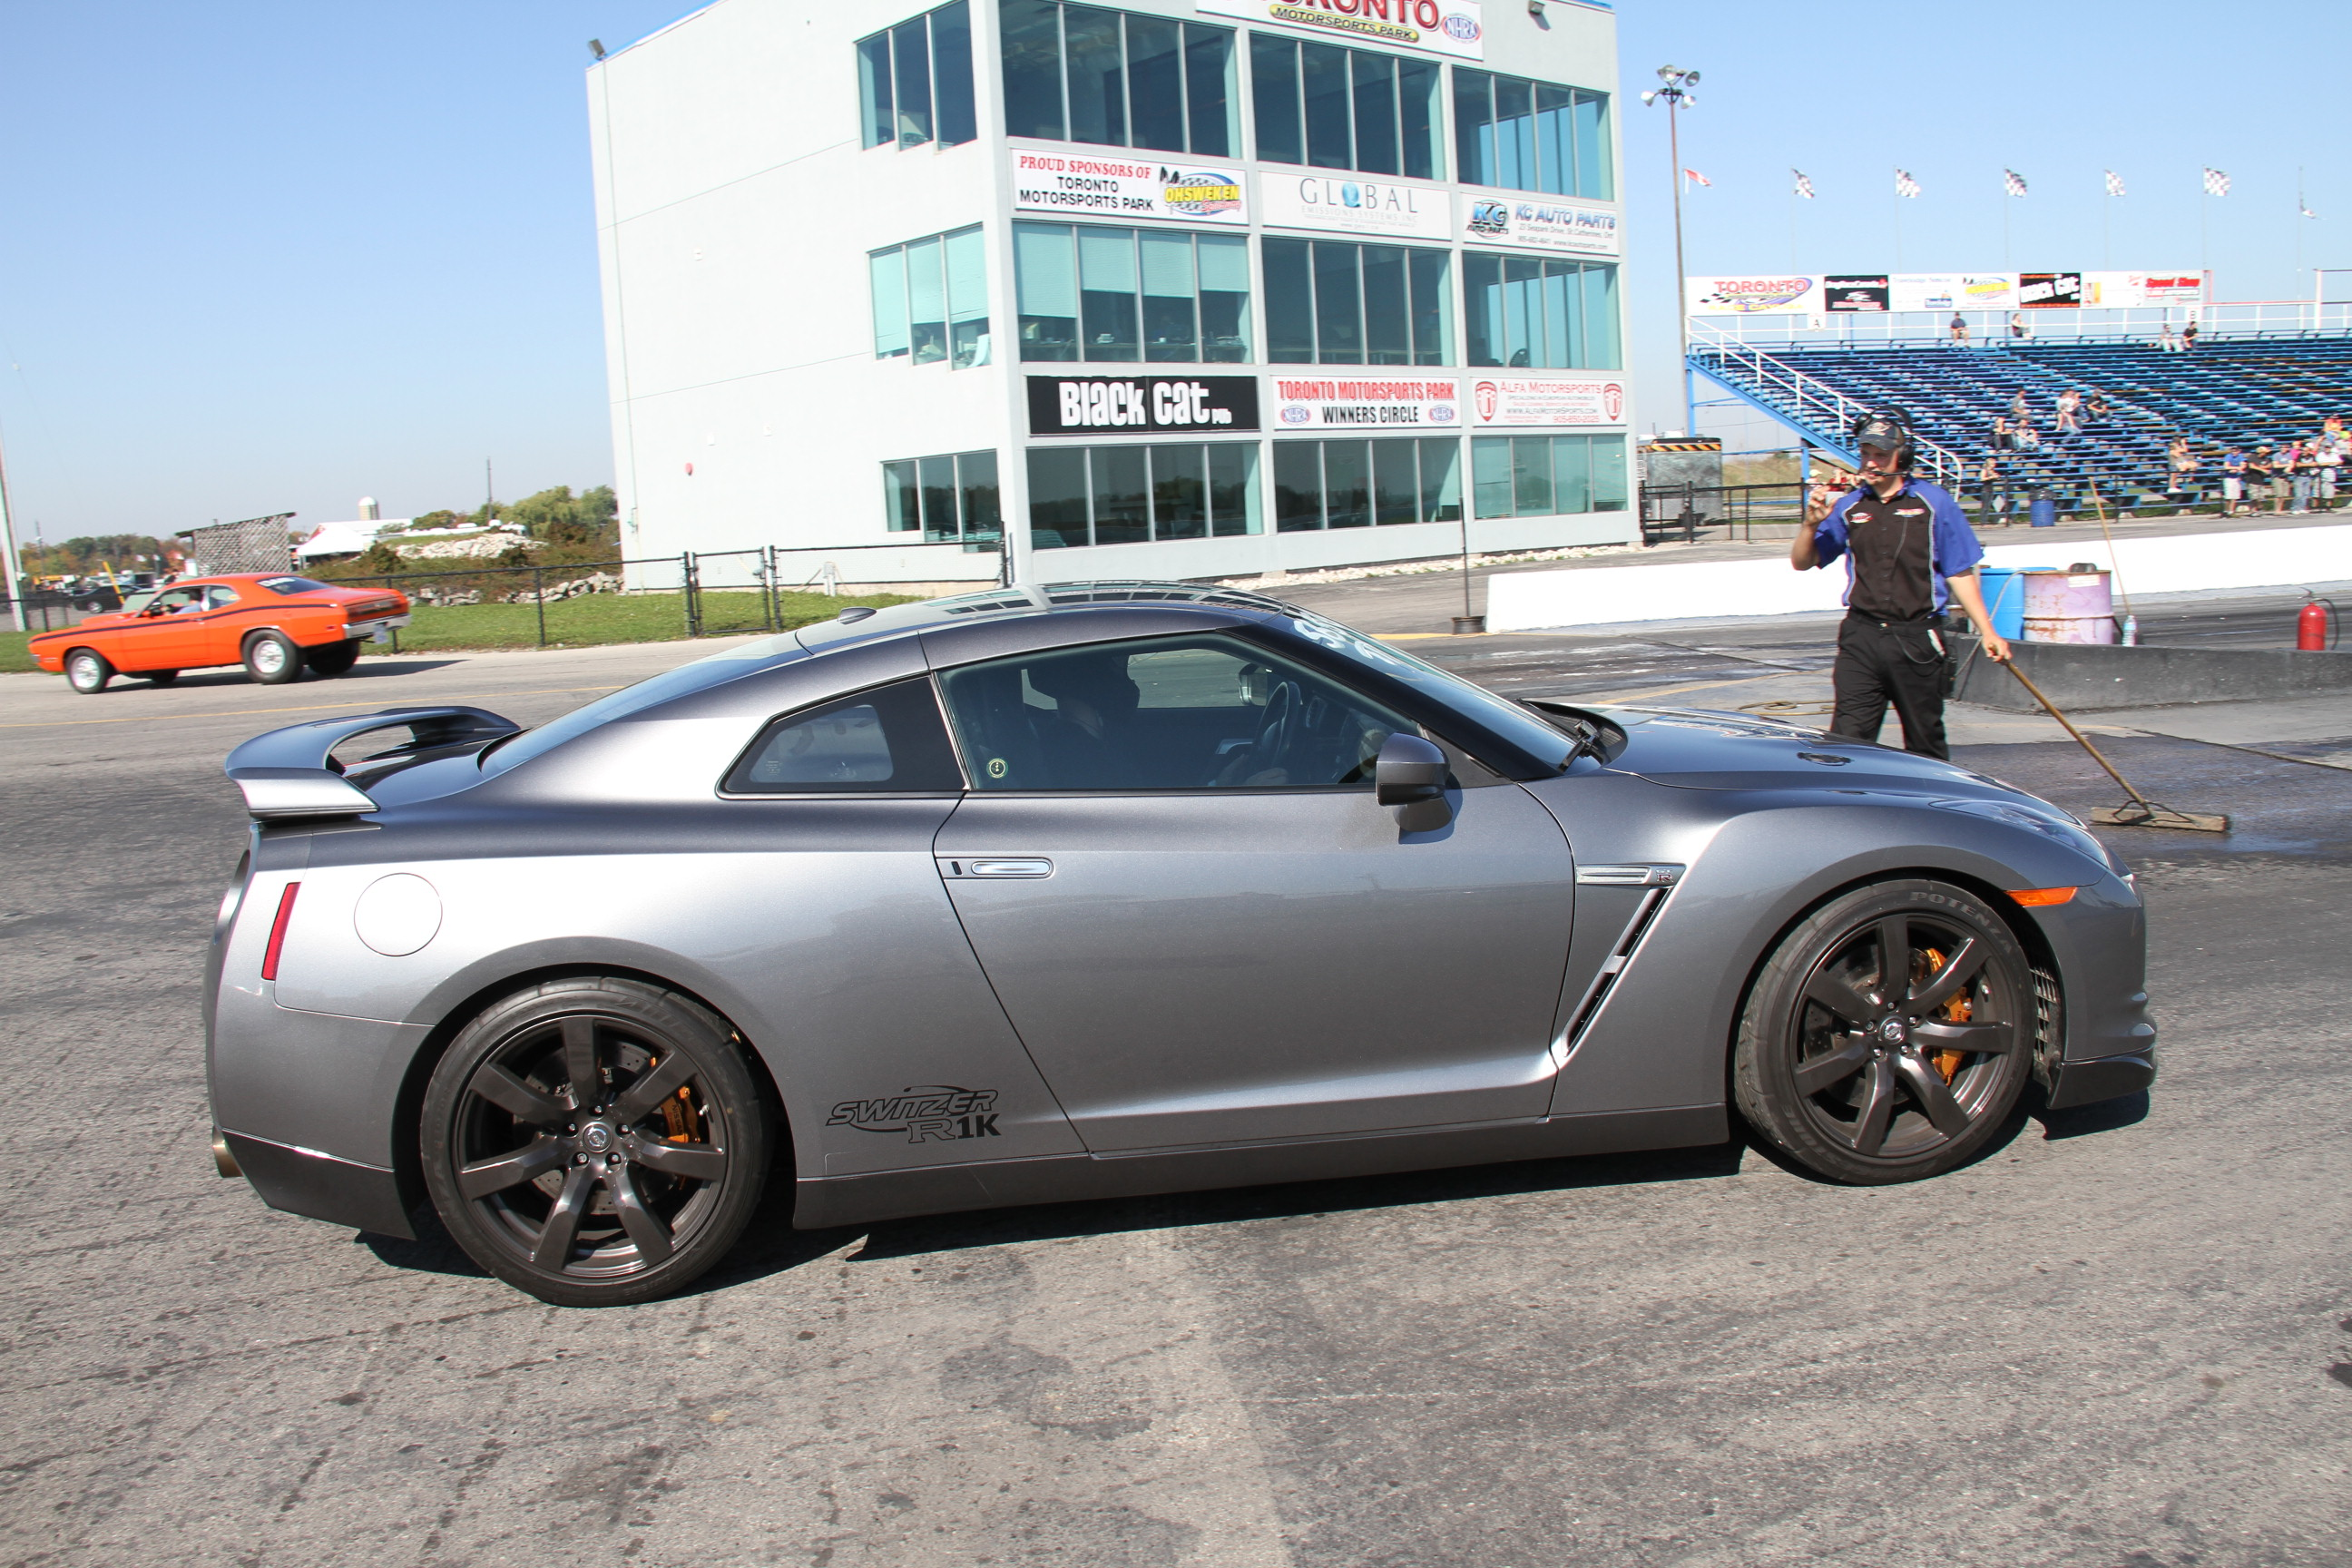 Gun Metal Grey 2010 Nissan GT-R Switzer R1K (Pump Gas)